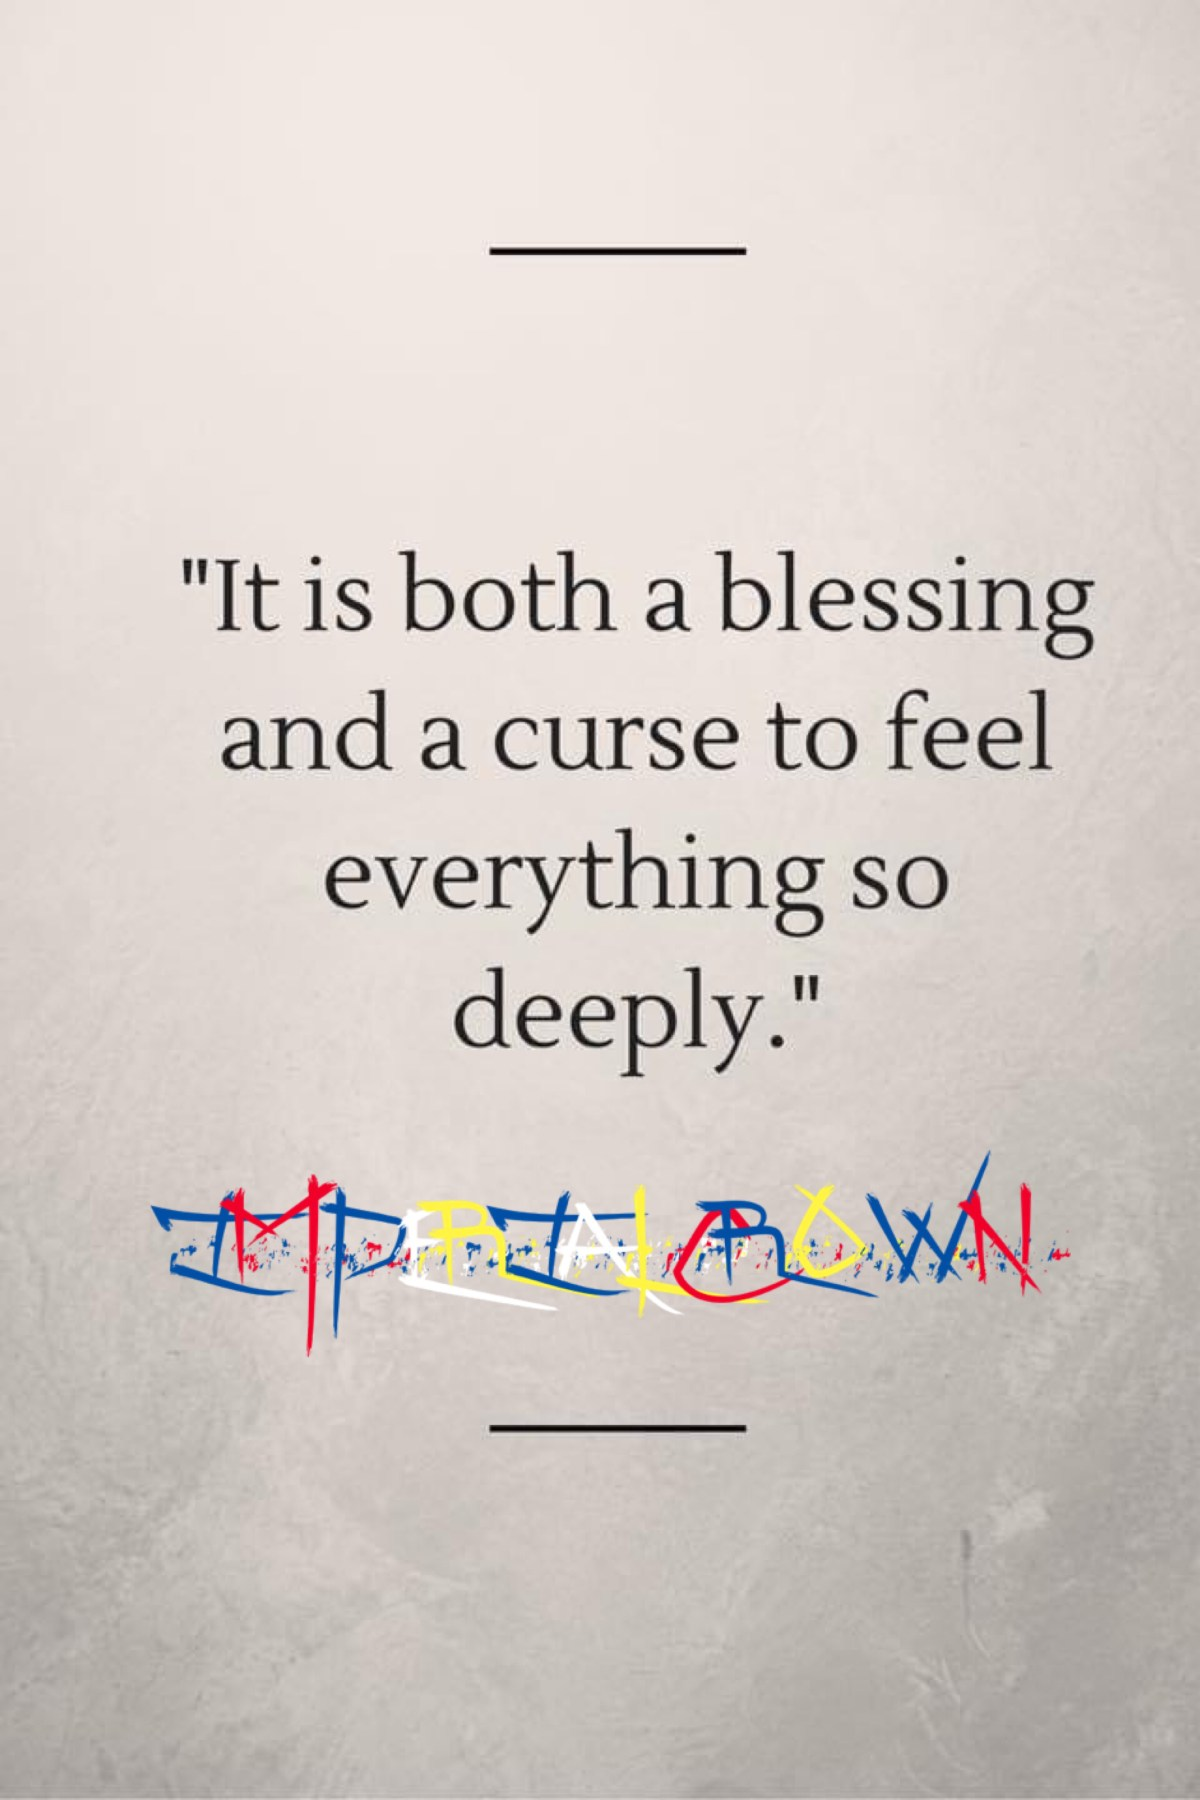 """"""" It's both a blessing and a curse to feel everything so deeply."""""""